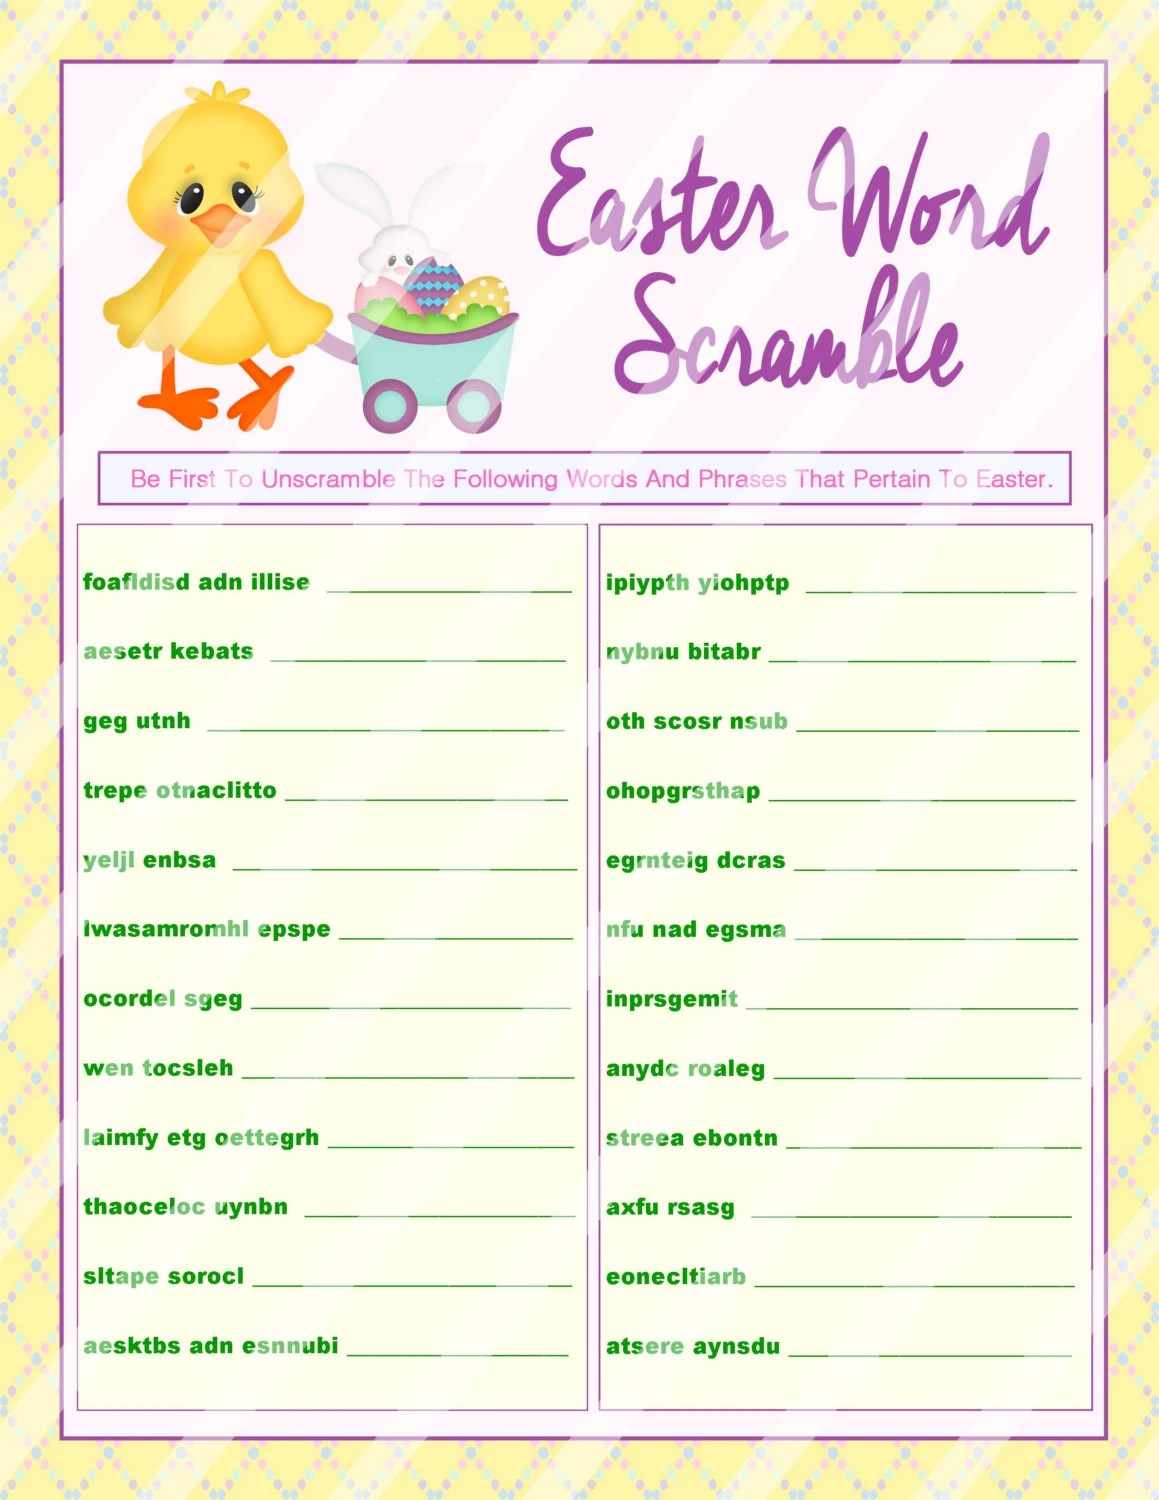 Easter Word Scramble Printable Word Scramble Diy Easter